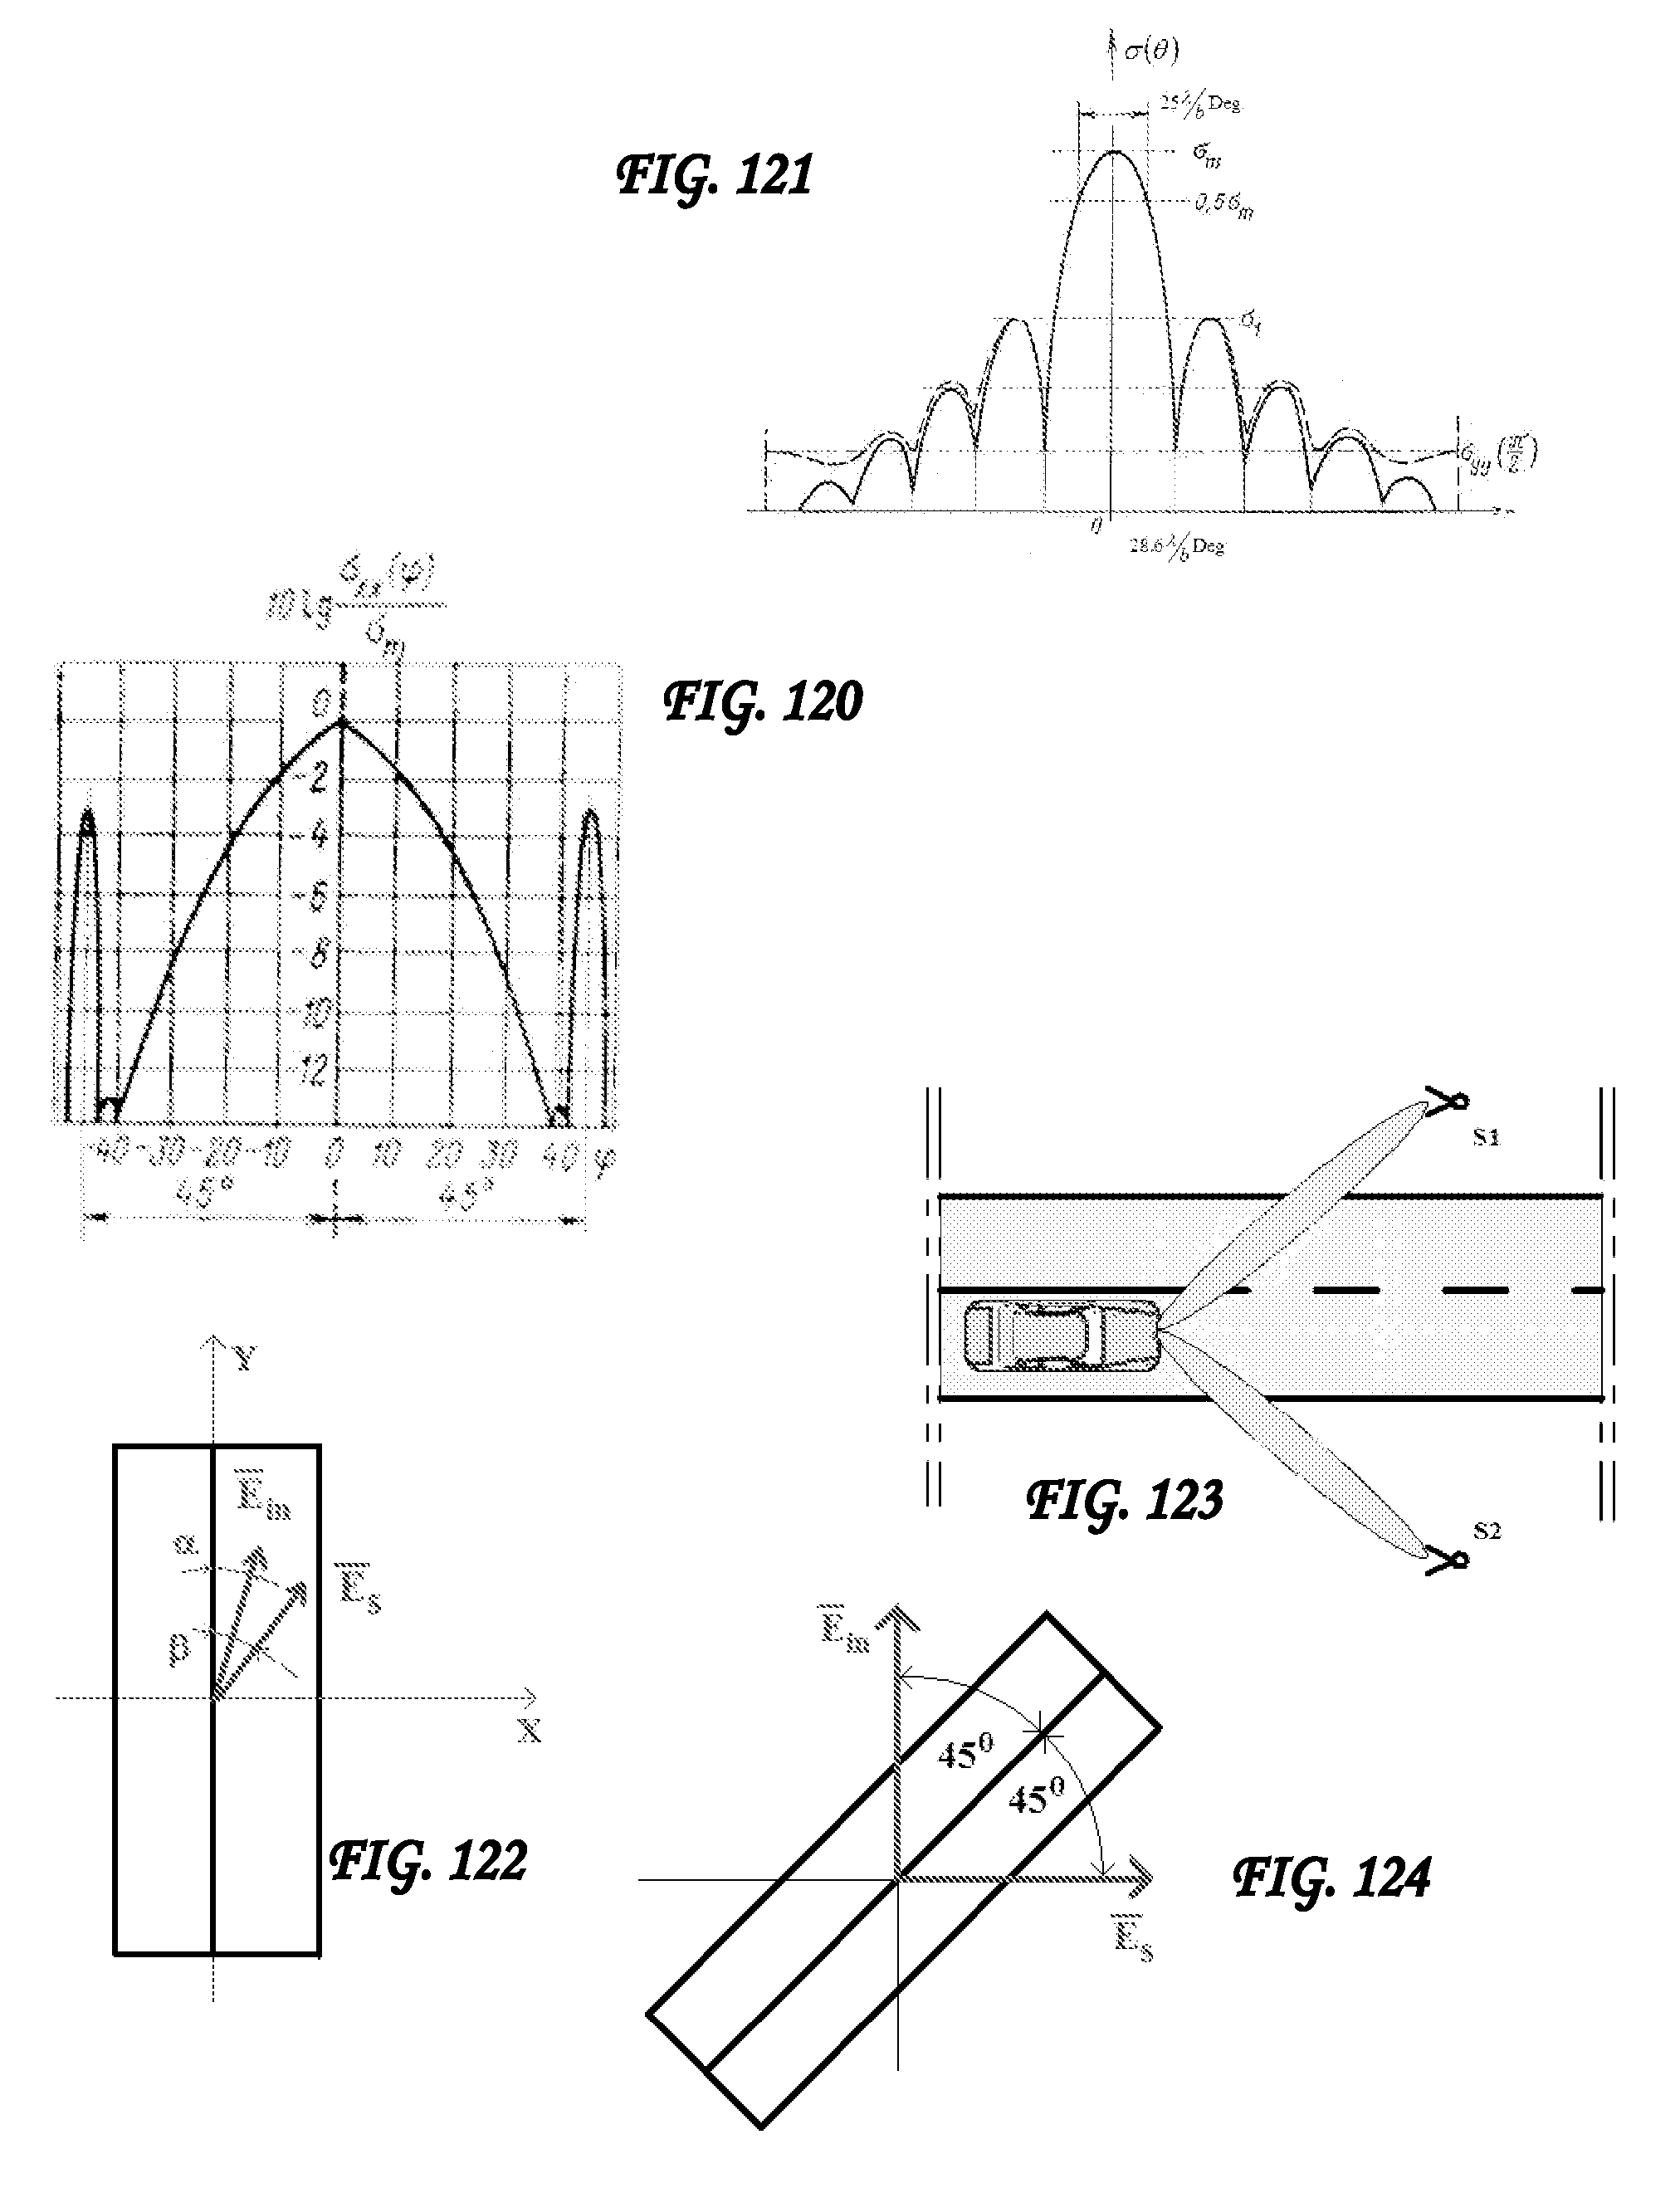 Patent Us 7313467 B2 High And Low Voltage Cutoff With Delay Alarm Circuit Diagram 0 Petitions